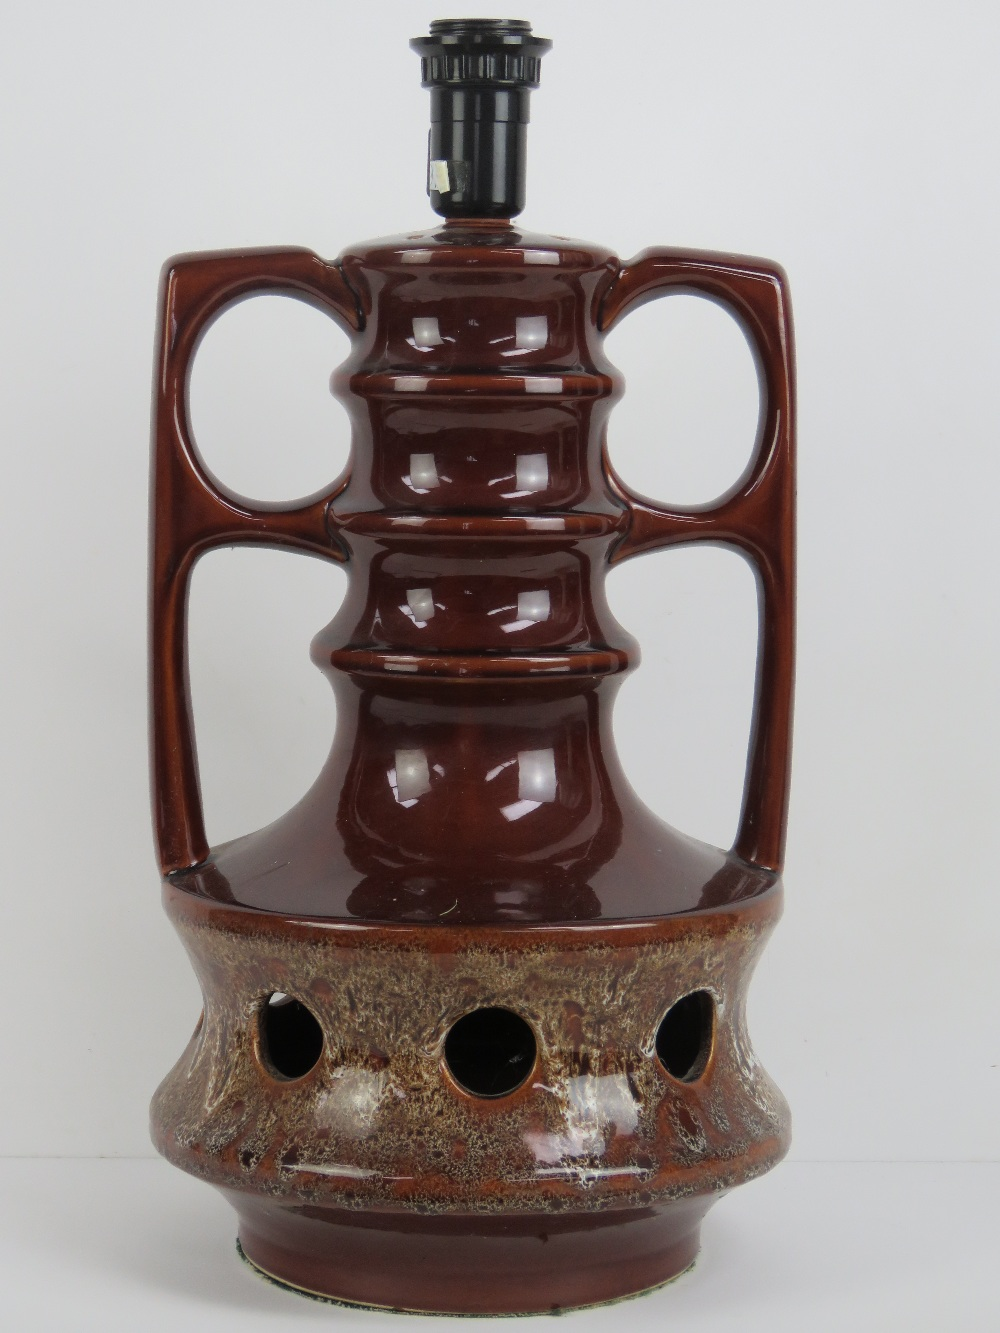 Lot 429 - A ceramic lamp having light fittings to top and base, standing 48cm high, for rewiring.